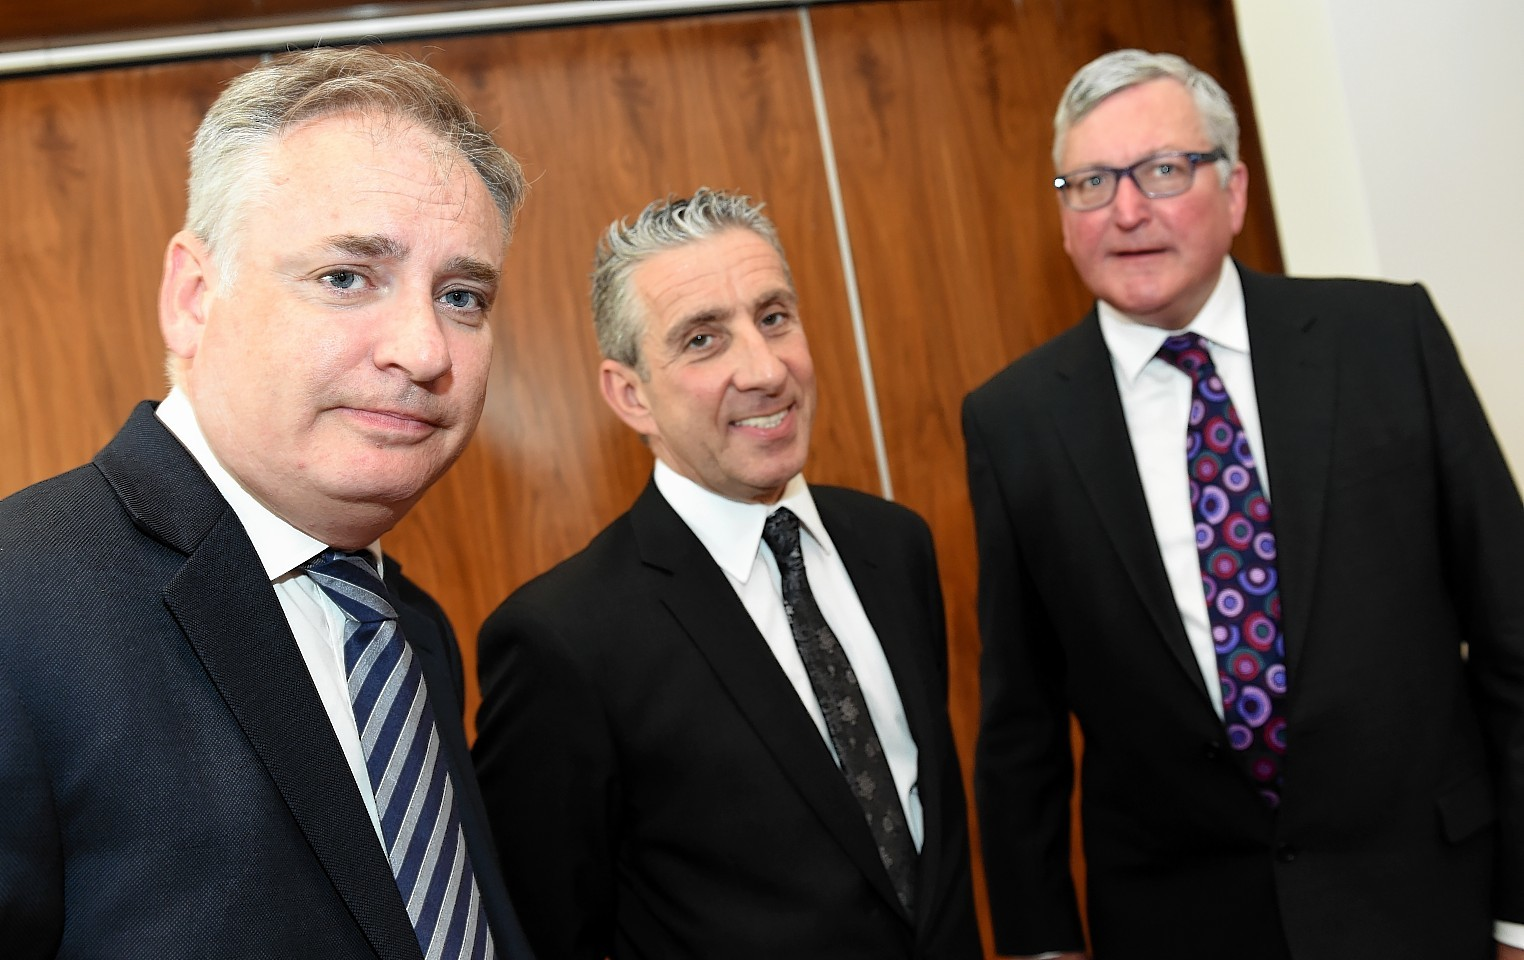 Young's boss Pete Ward (centre) with Richard Lochhead MSP and Fergus Ewing MSP.